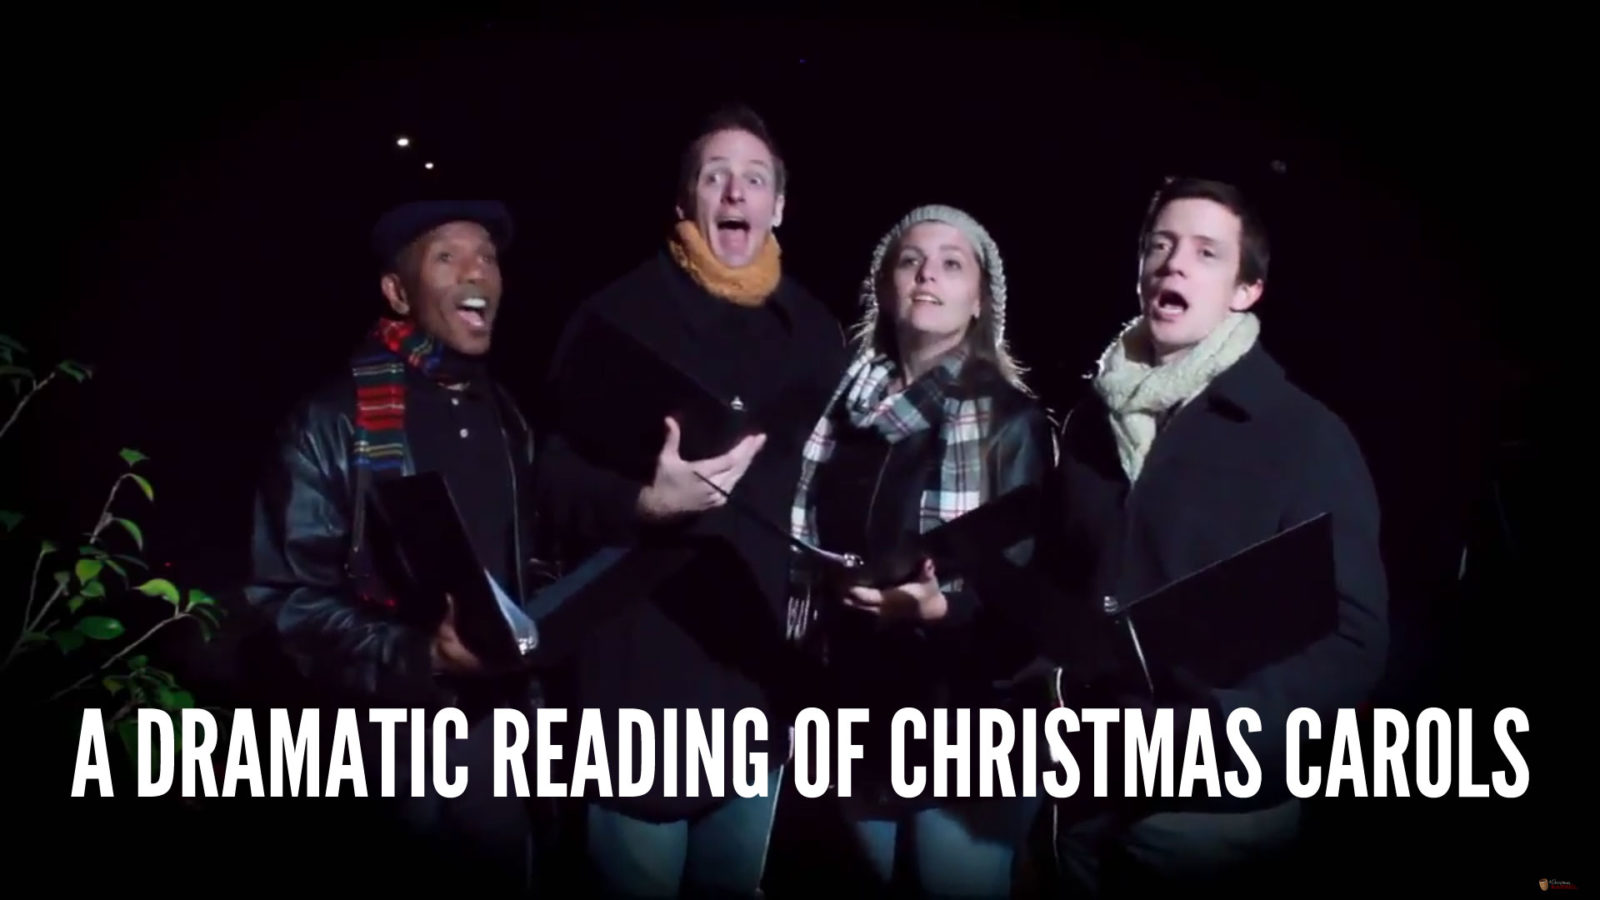 A Dramatic Reading of Christmas Carols